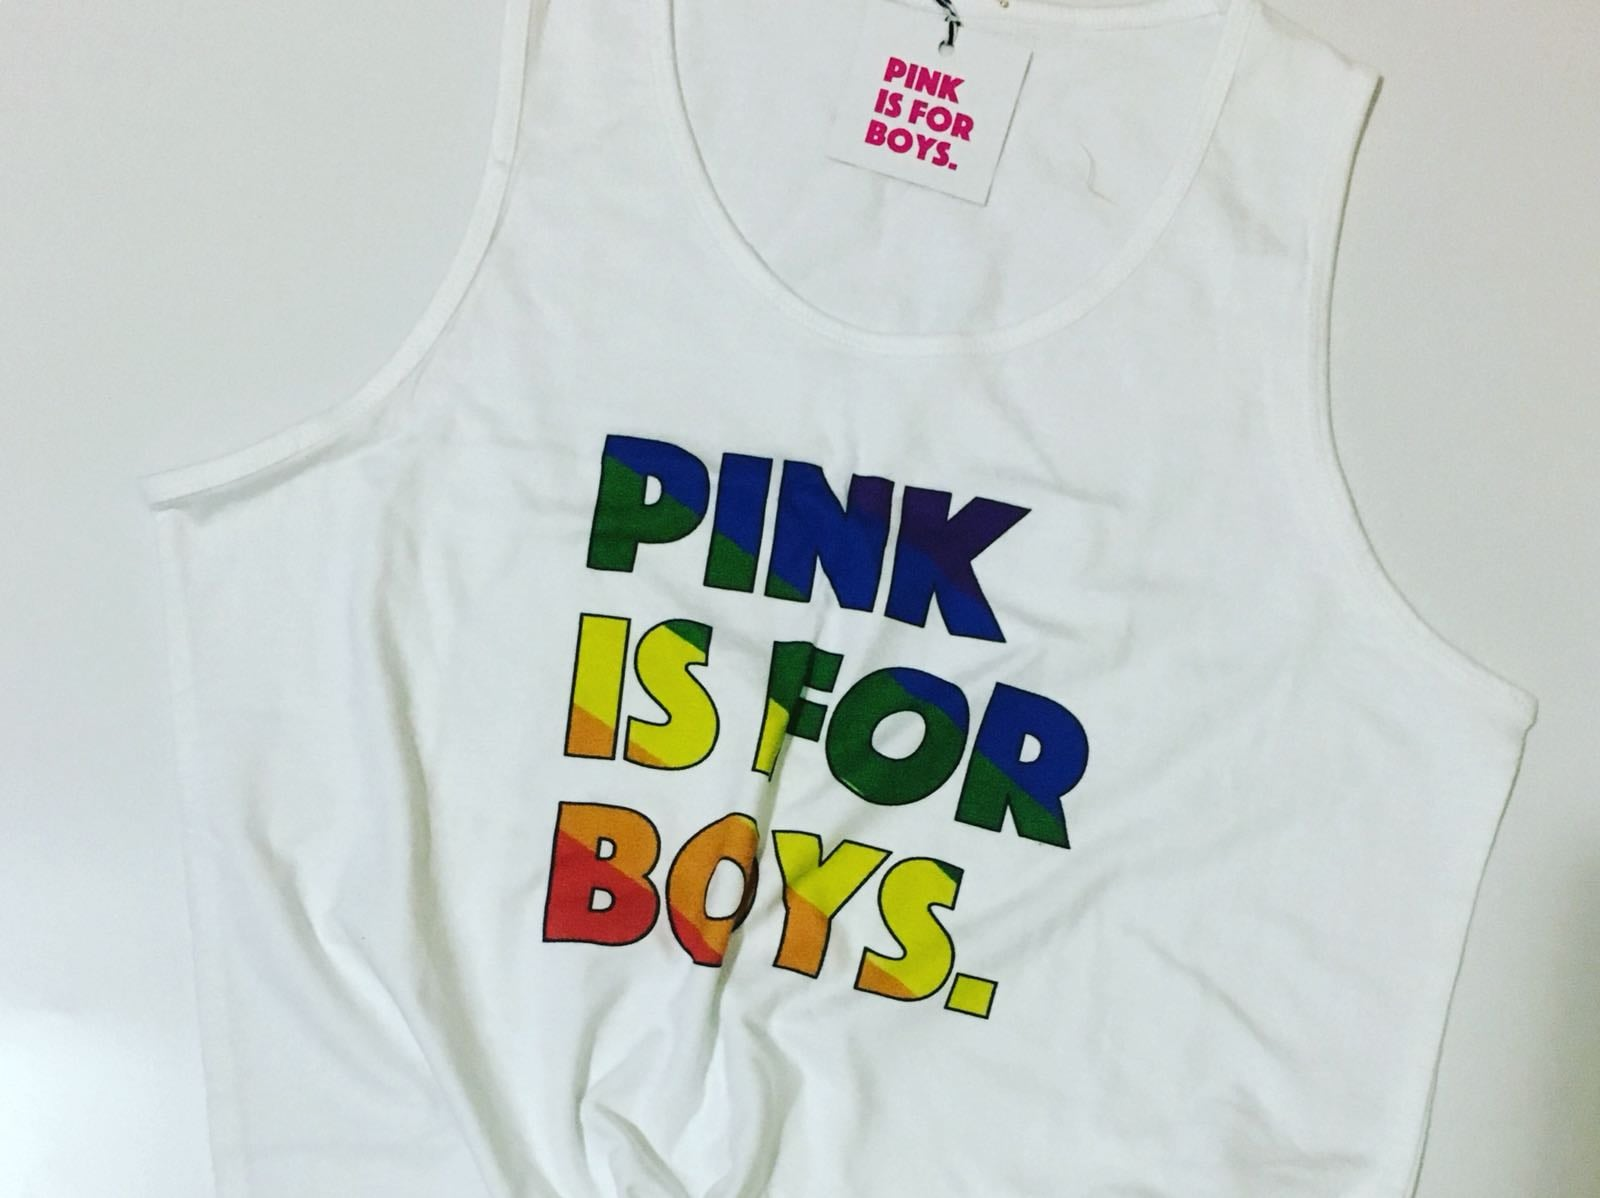 גופיה יוניסקס לבנה Pink is for boys גאווה 2017